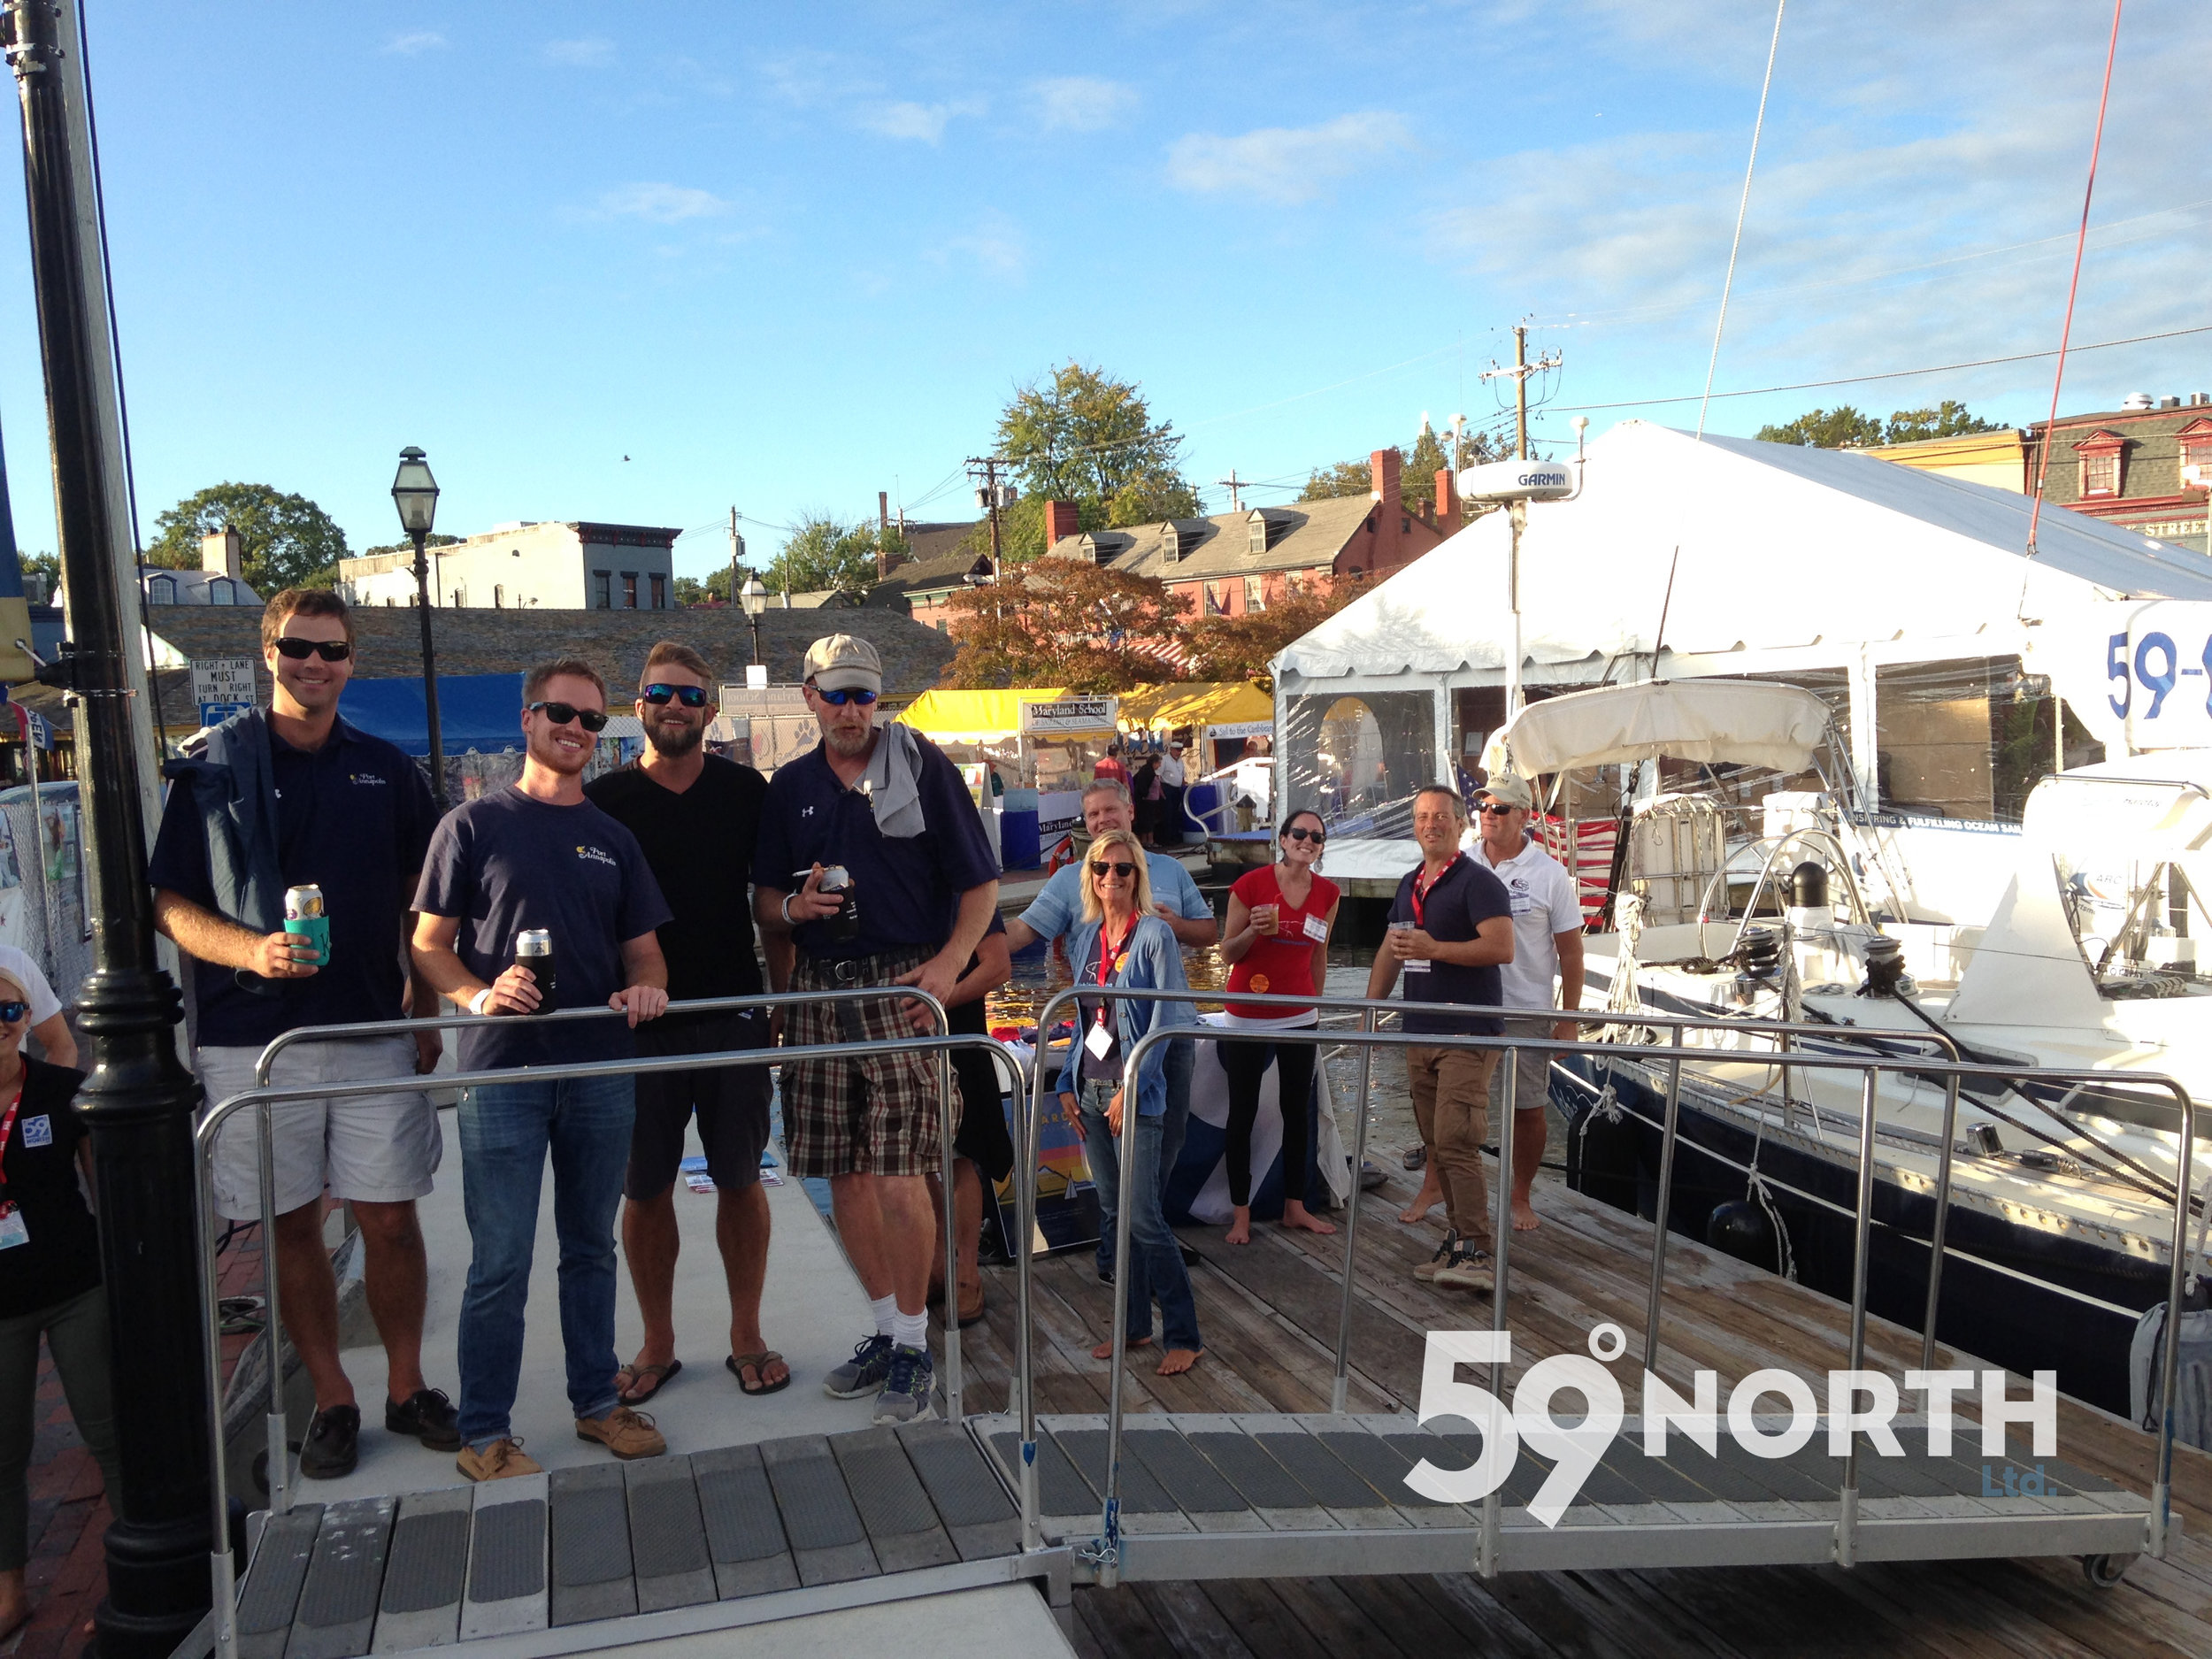 Another 2016 highlight was to have Isbjorn in the Annapolis Boat Show, basically a 5 day whirlwind of fun! Oct. 2016